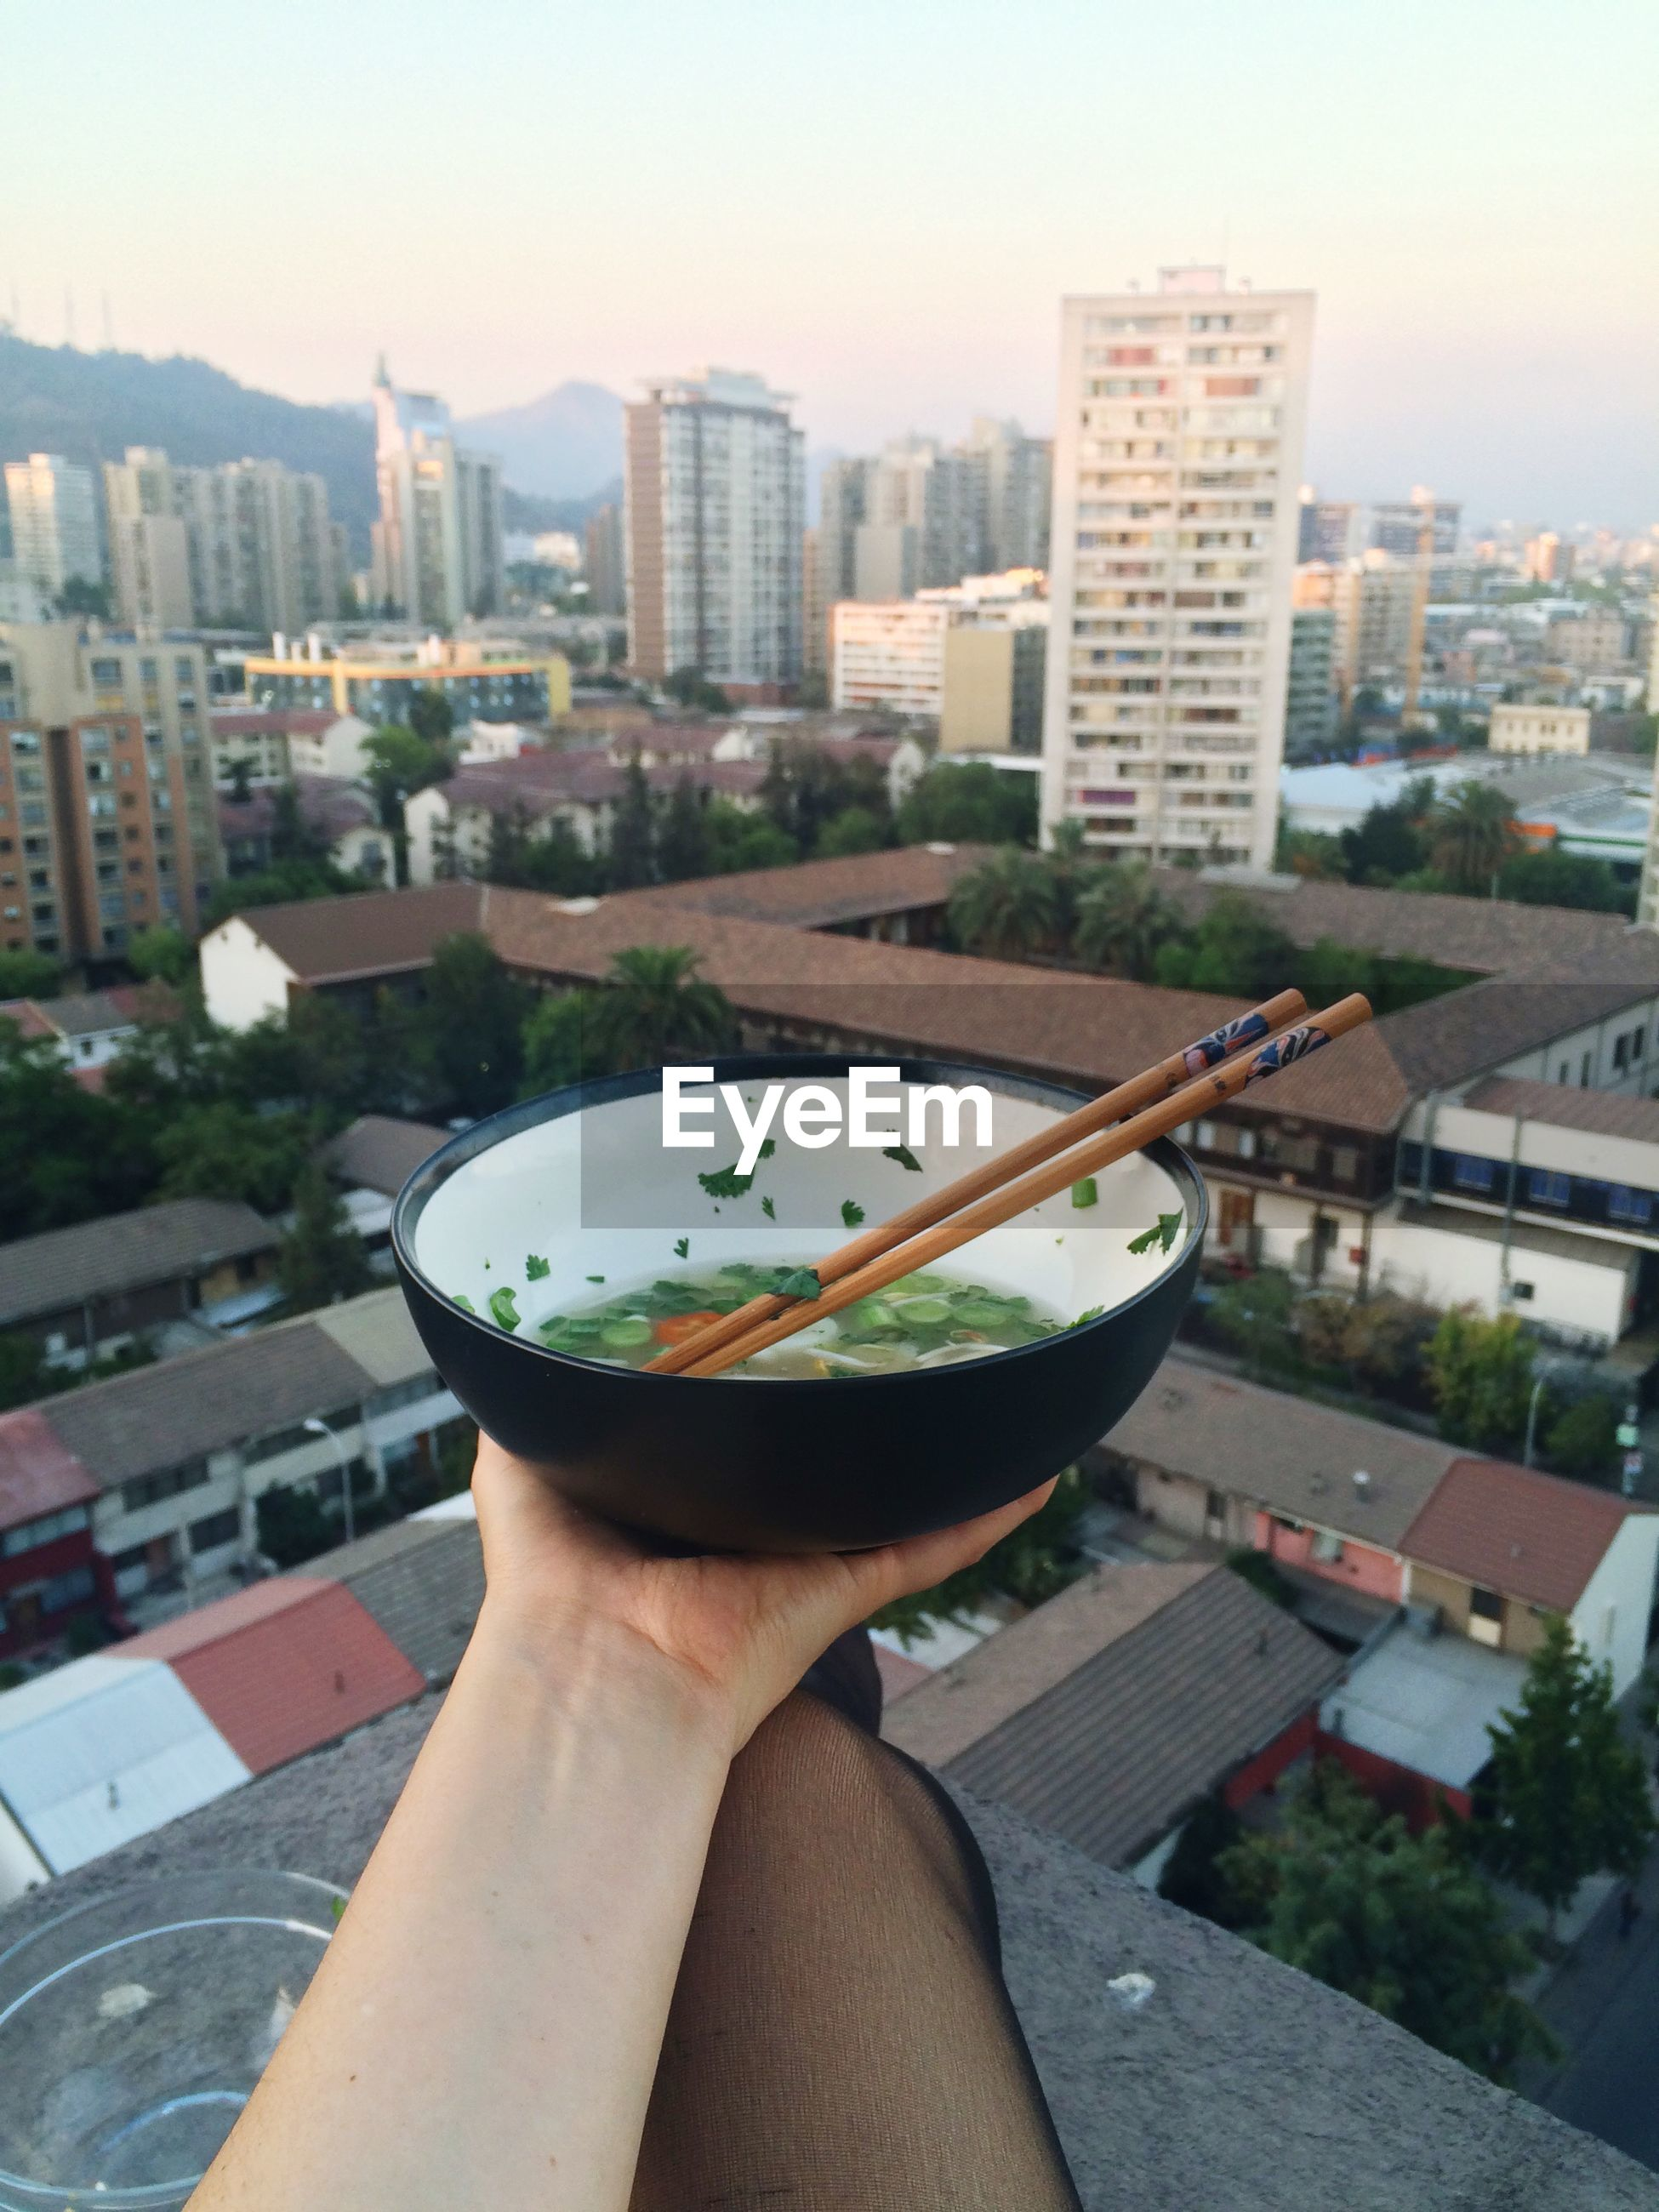 Cropped image of woman holding bowl of soup against cityscape